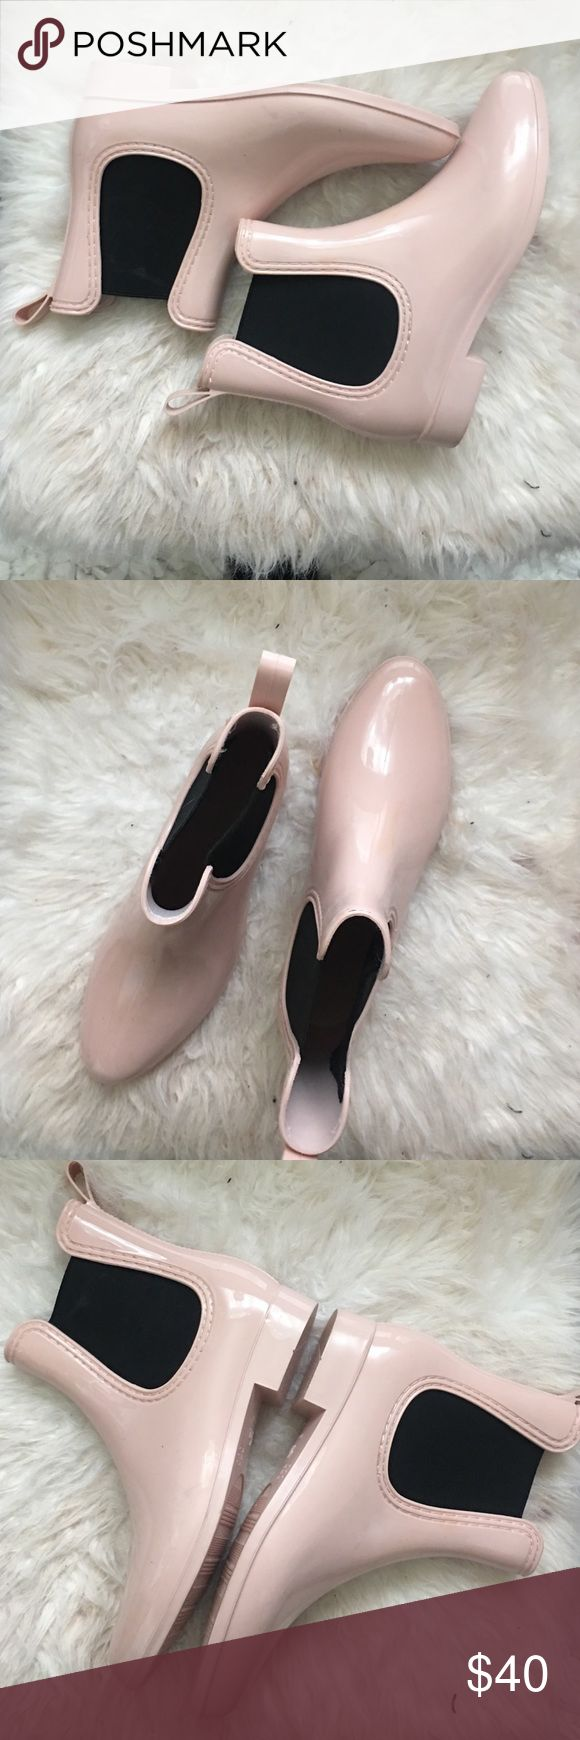 Size 9 1/2 - 10 pink rain boots worn once (narrow Pink ankle rain boots with a gloss finish size 9/12-10 runs narrow with a heel wore them once couldn't fit them Asos Shoes Winter & Rain Boots